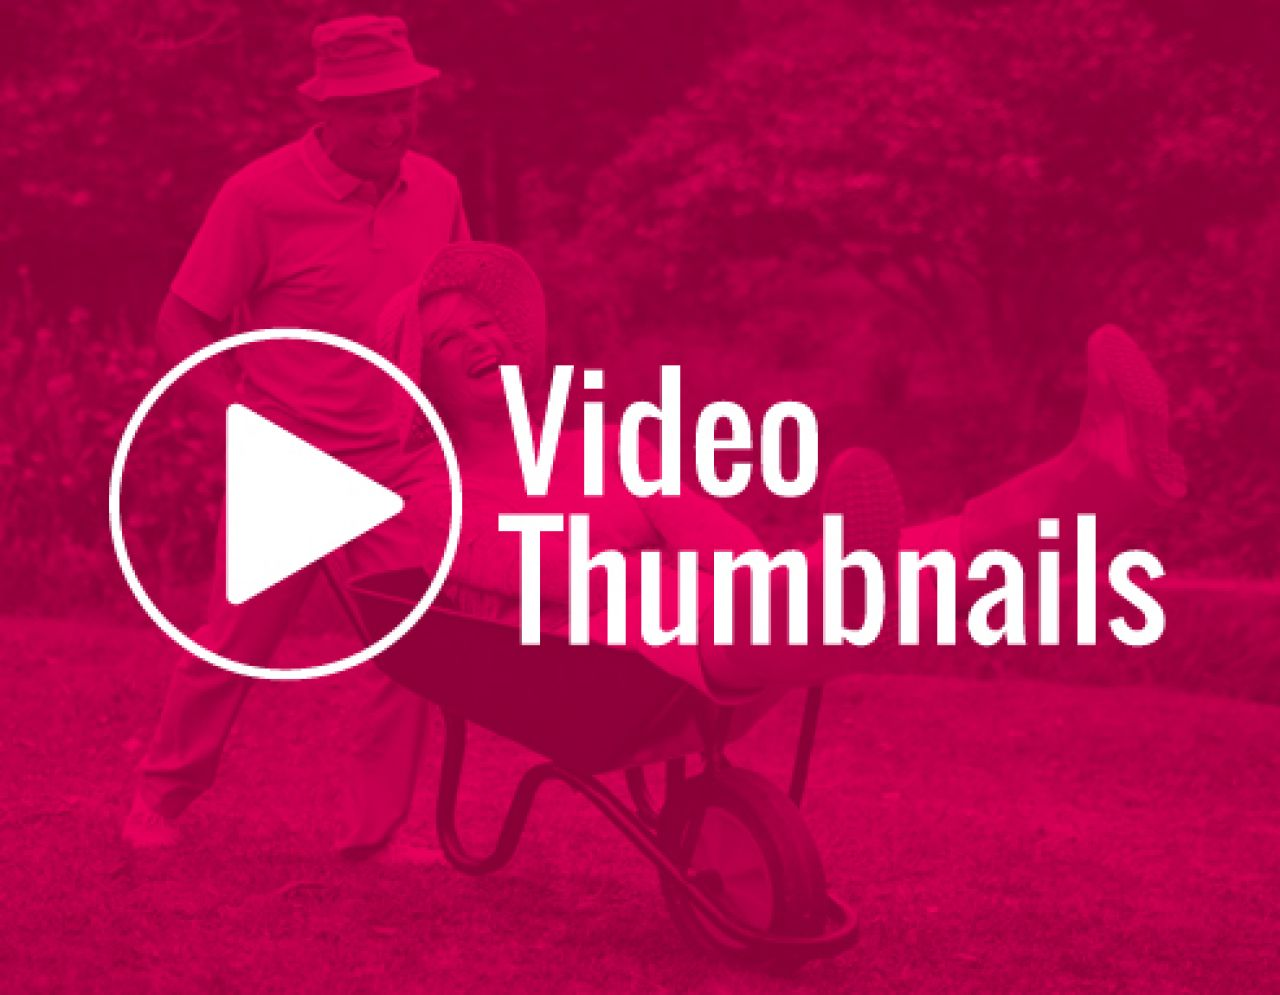 Video Thumbnails: Size & How To Make Them | Biteable